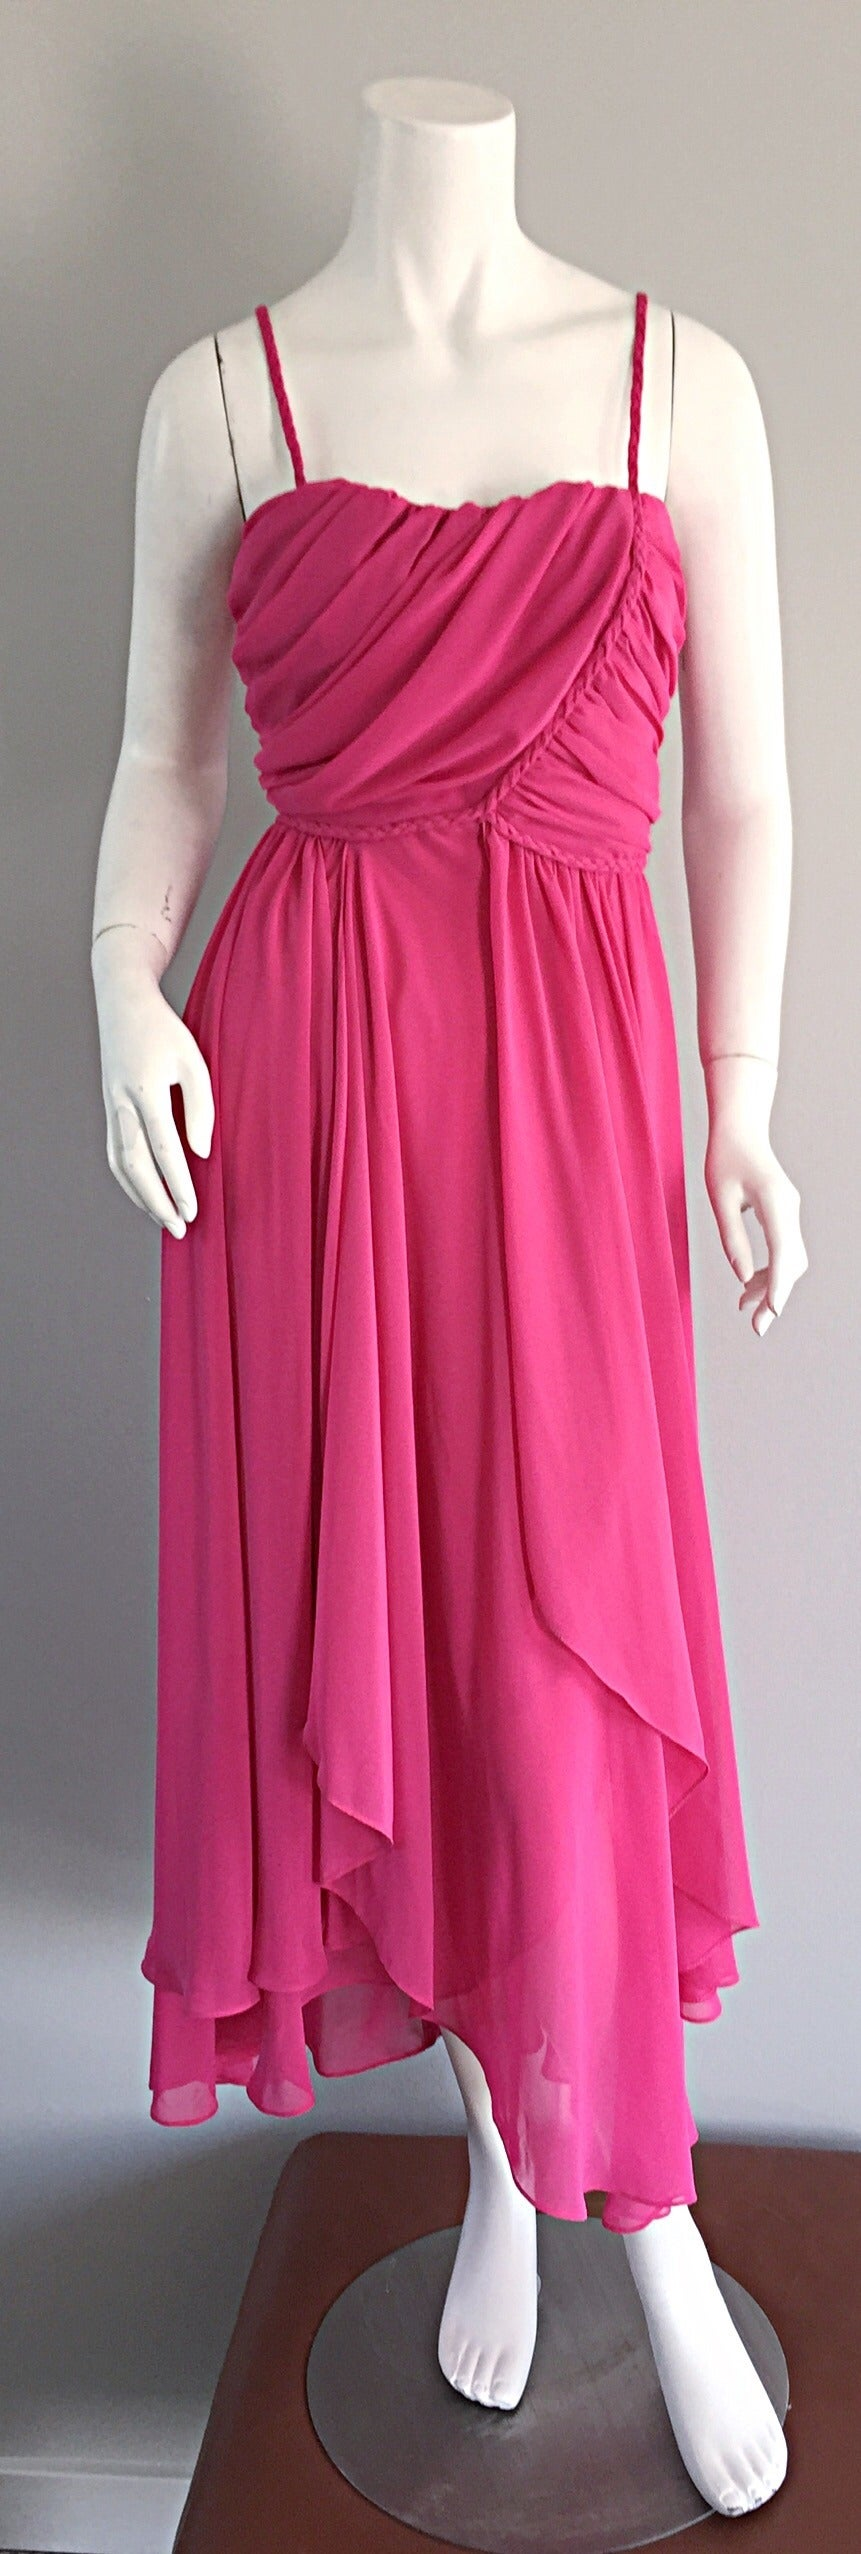 1970s Joy Stevens Hot Pink Vintage Flowy Grecian Disco Dress w/ Braided Details 8